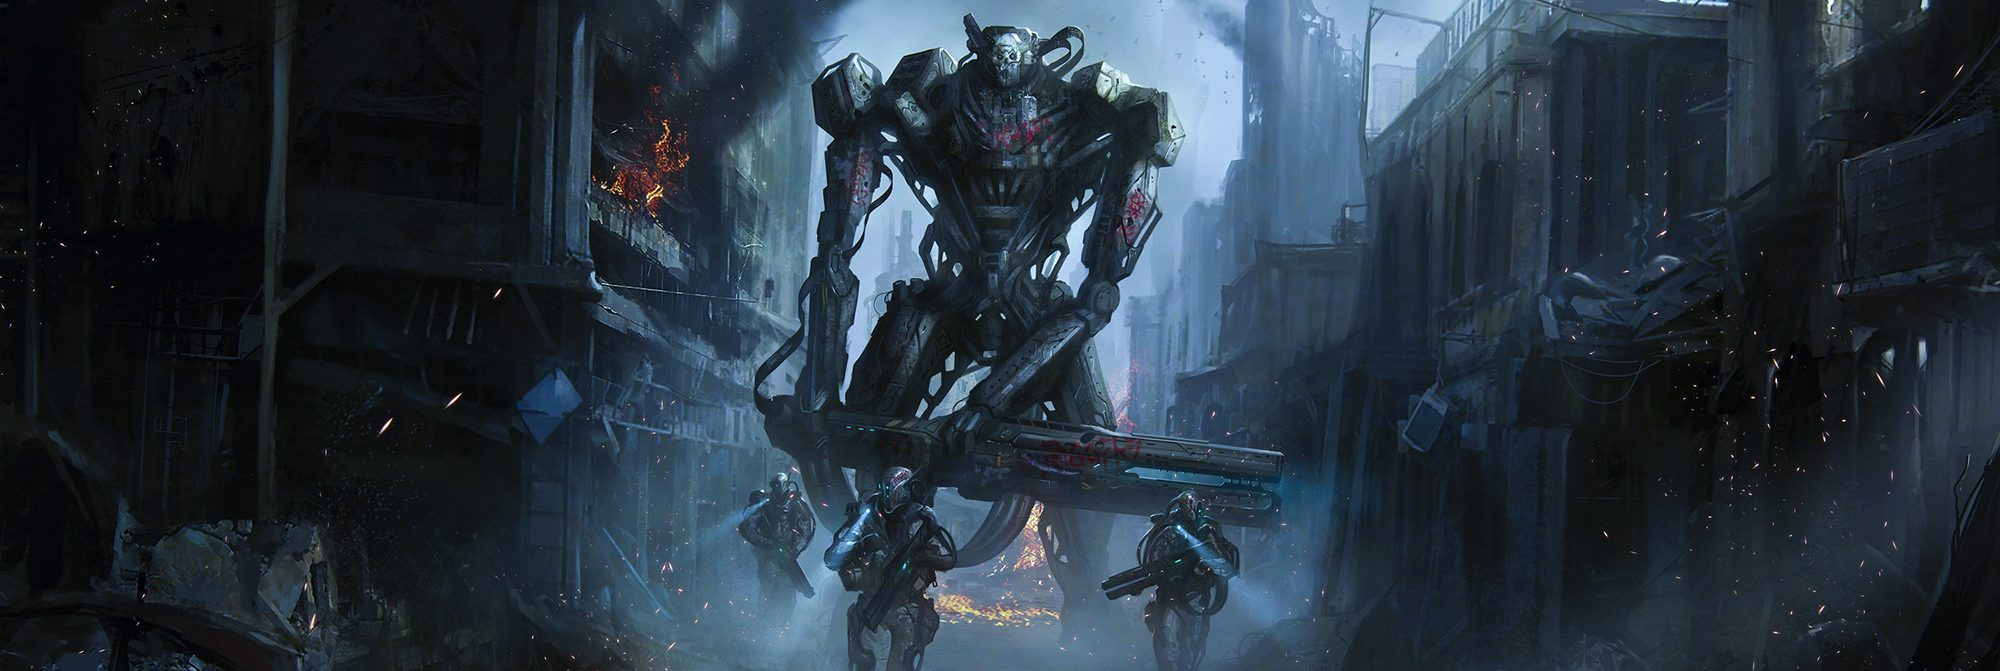 Image of a giant robot, End of Liberty, all images copyright Tom Edwards